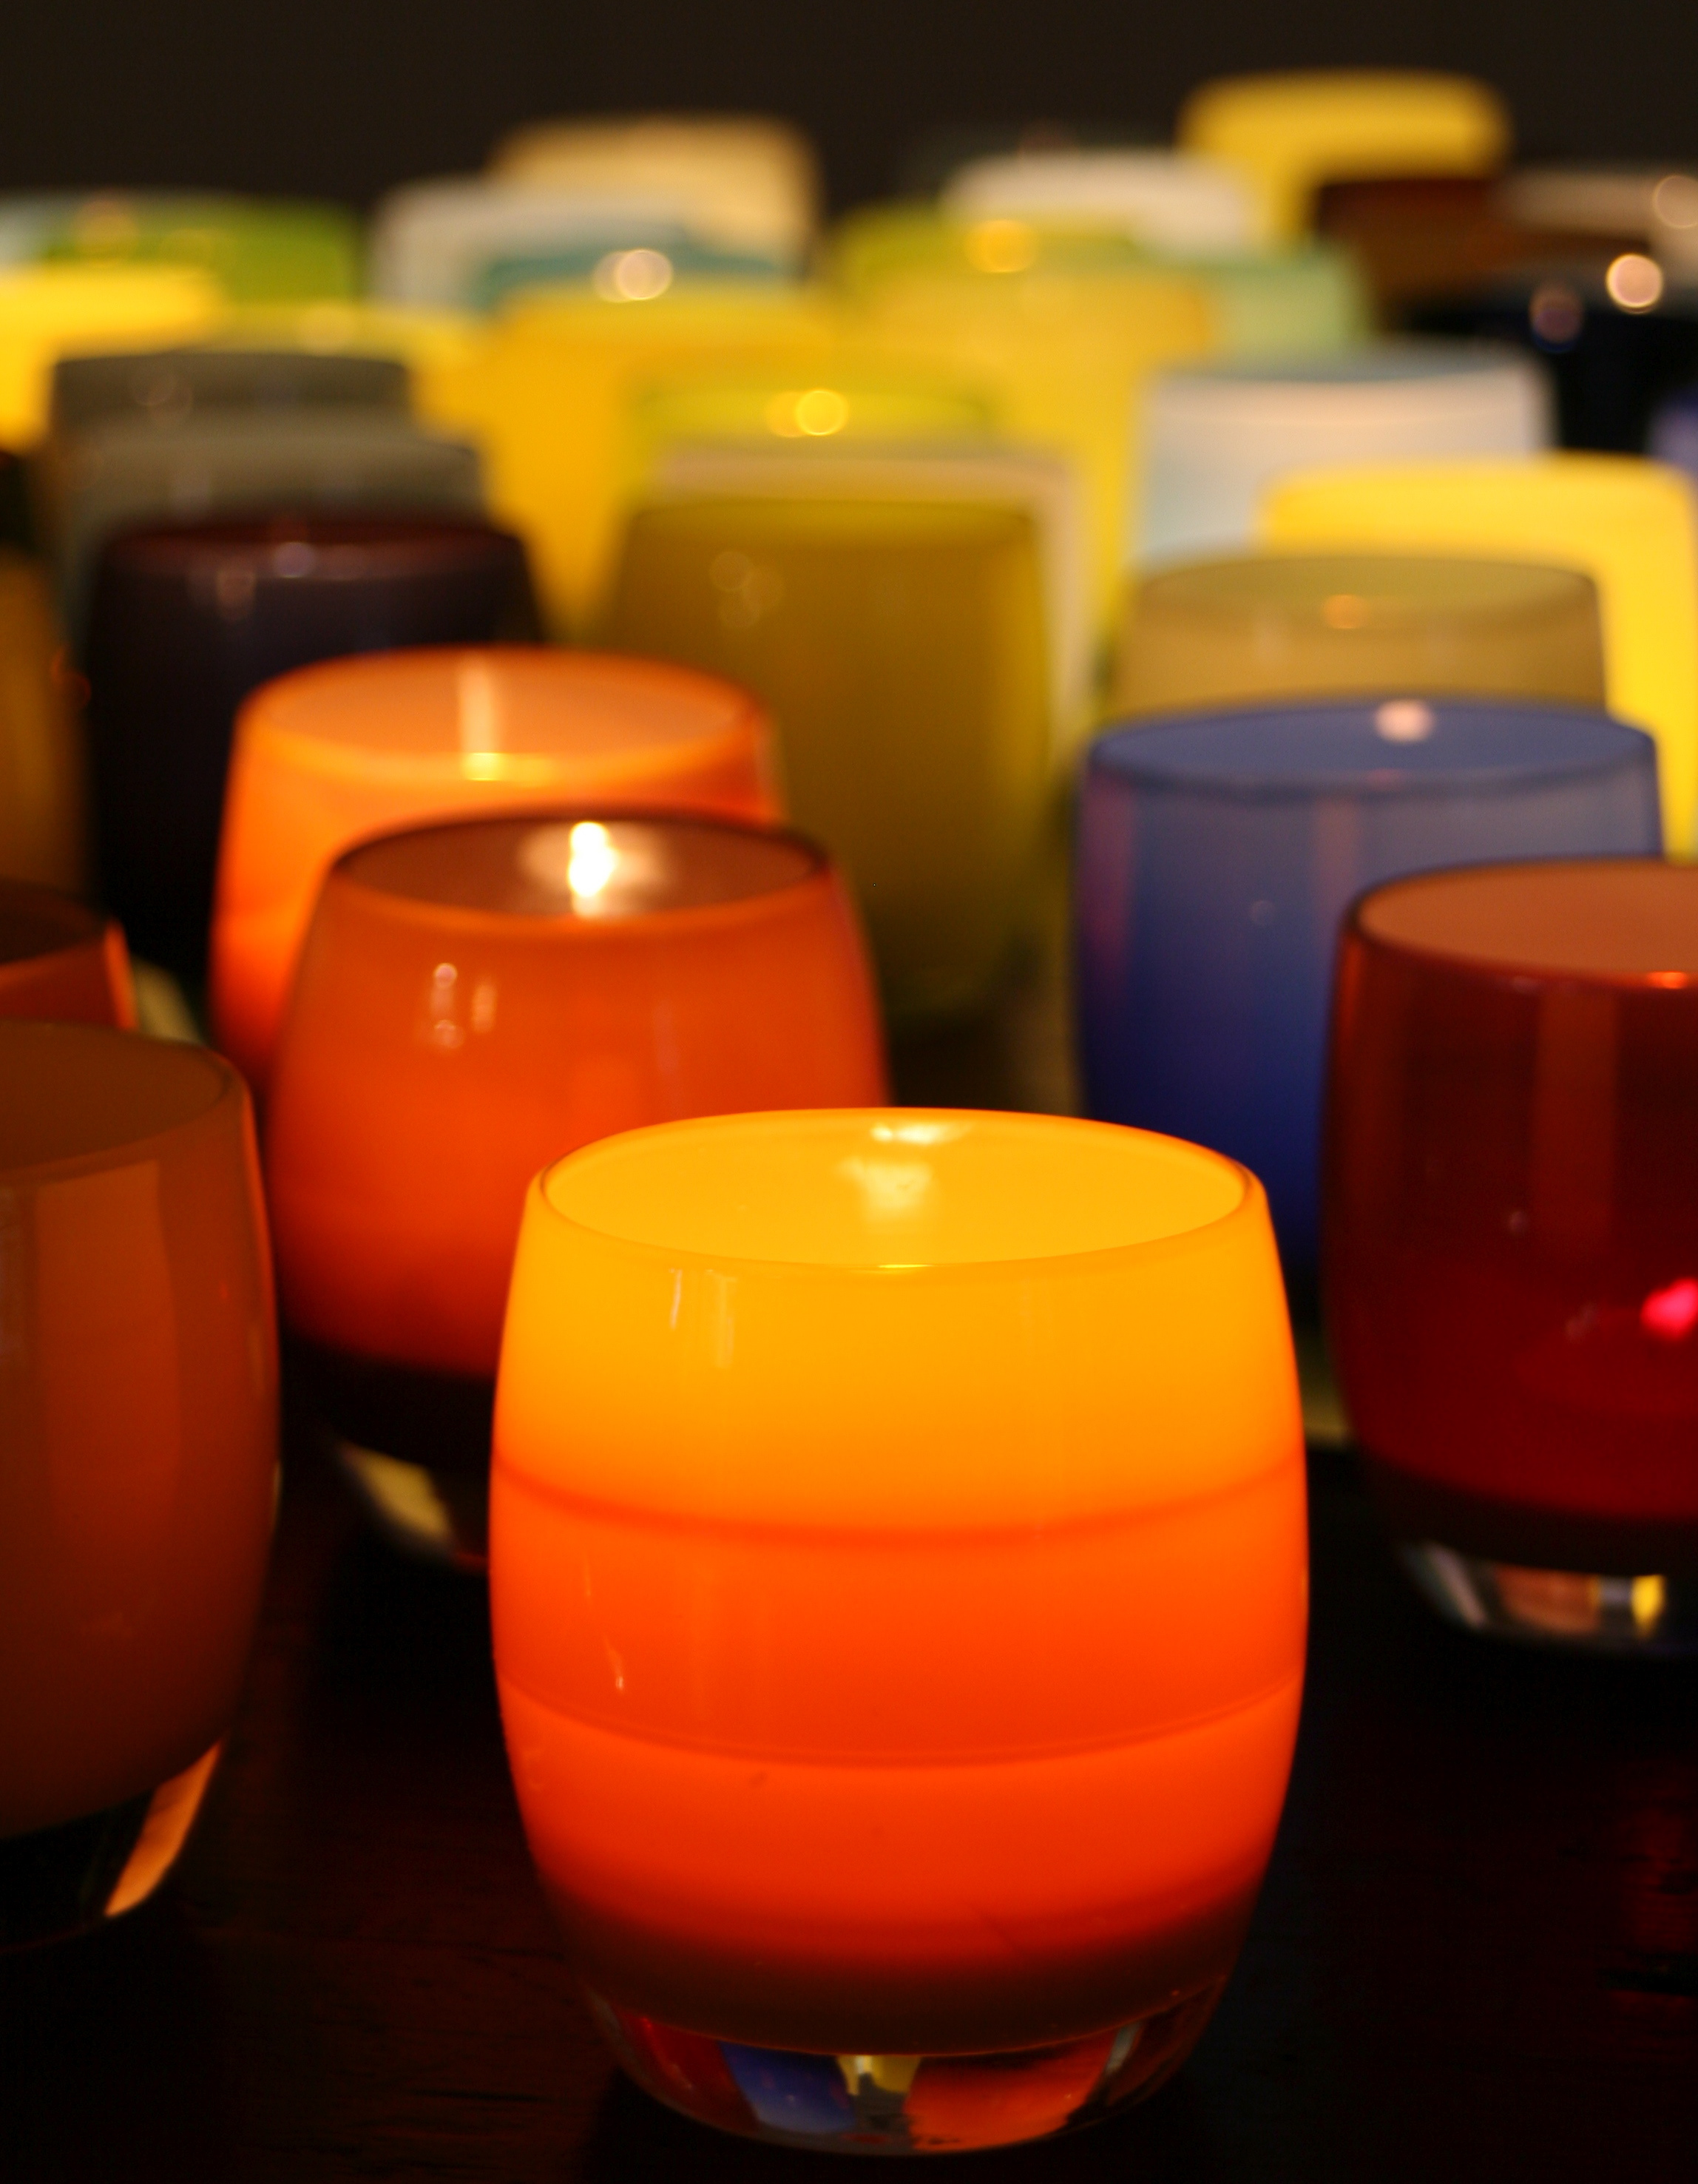 glassybaby lee woodruff